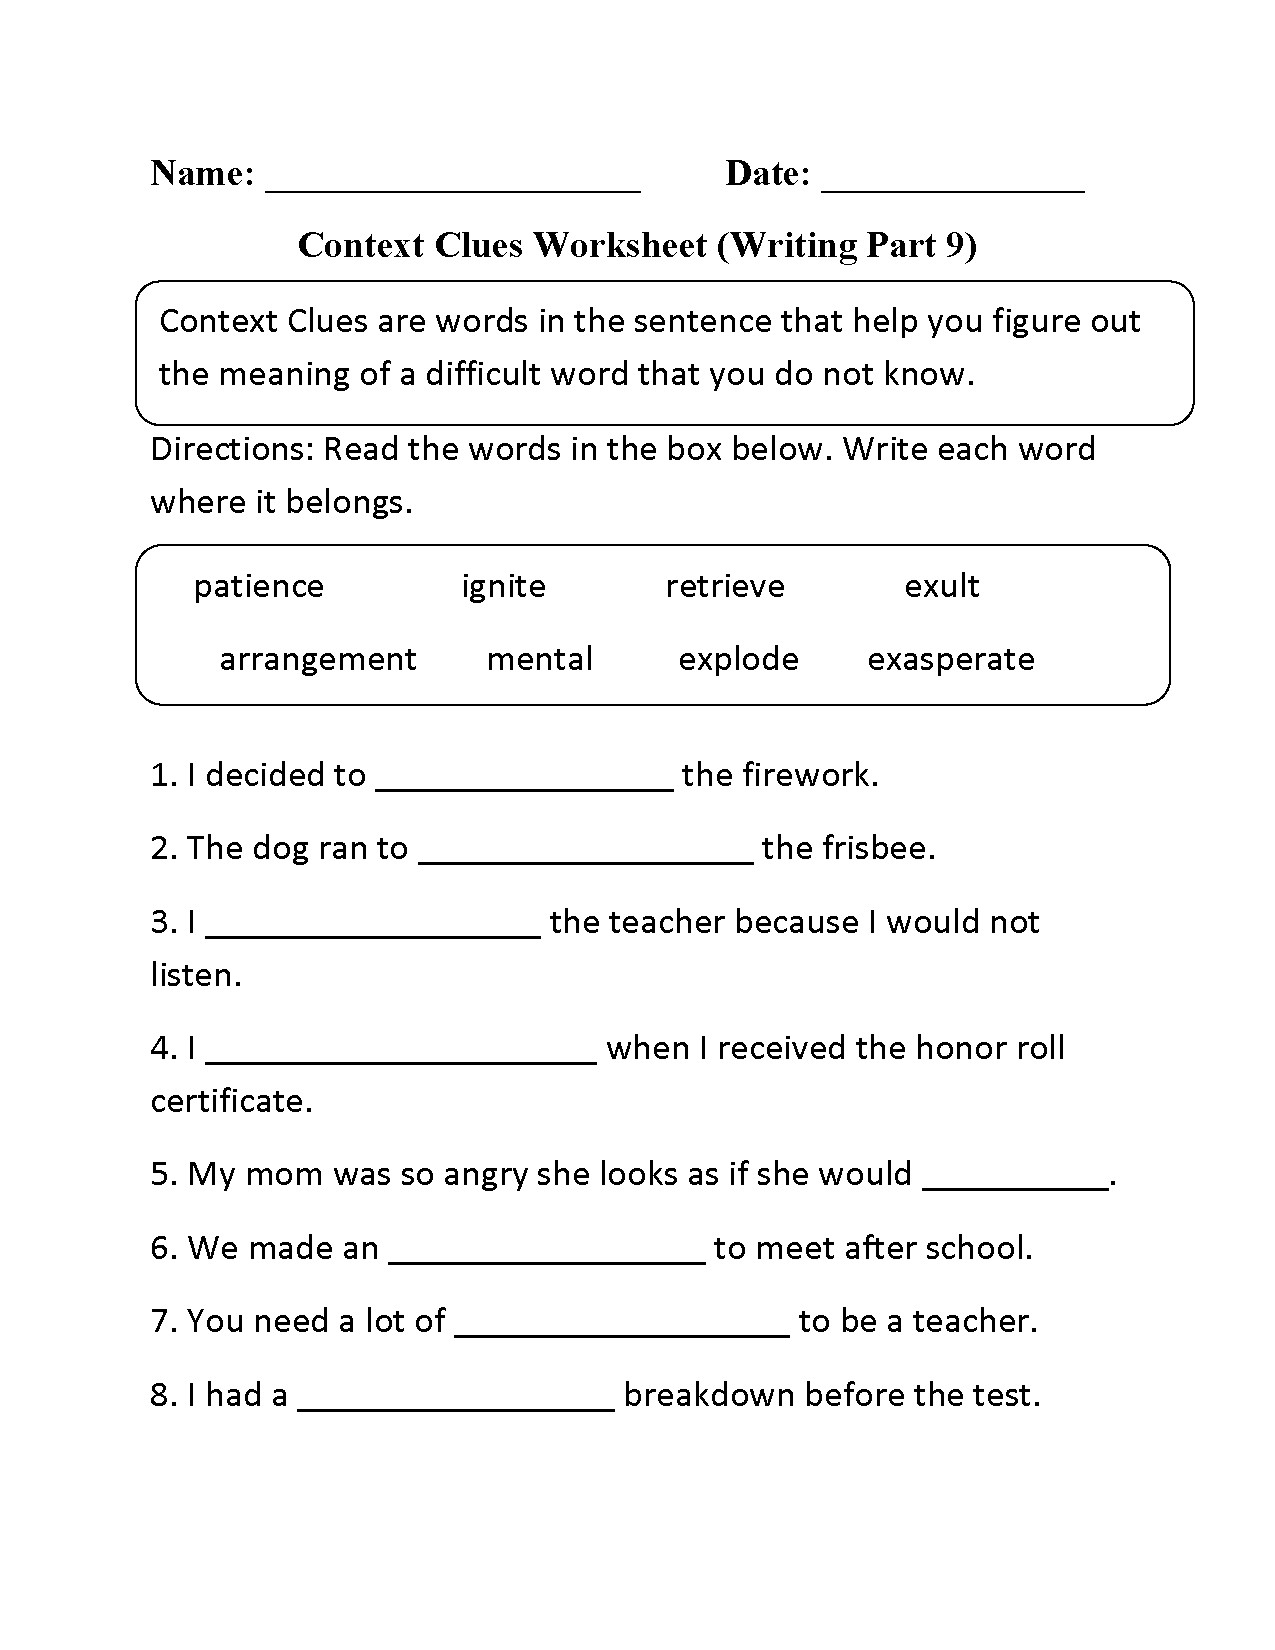 5th Grade Context Clues Worksheets 5th Grade Context Clues Worksheets